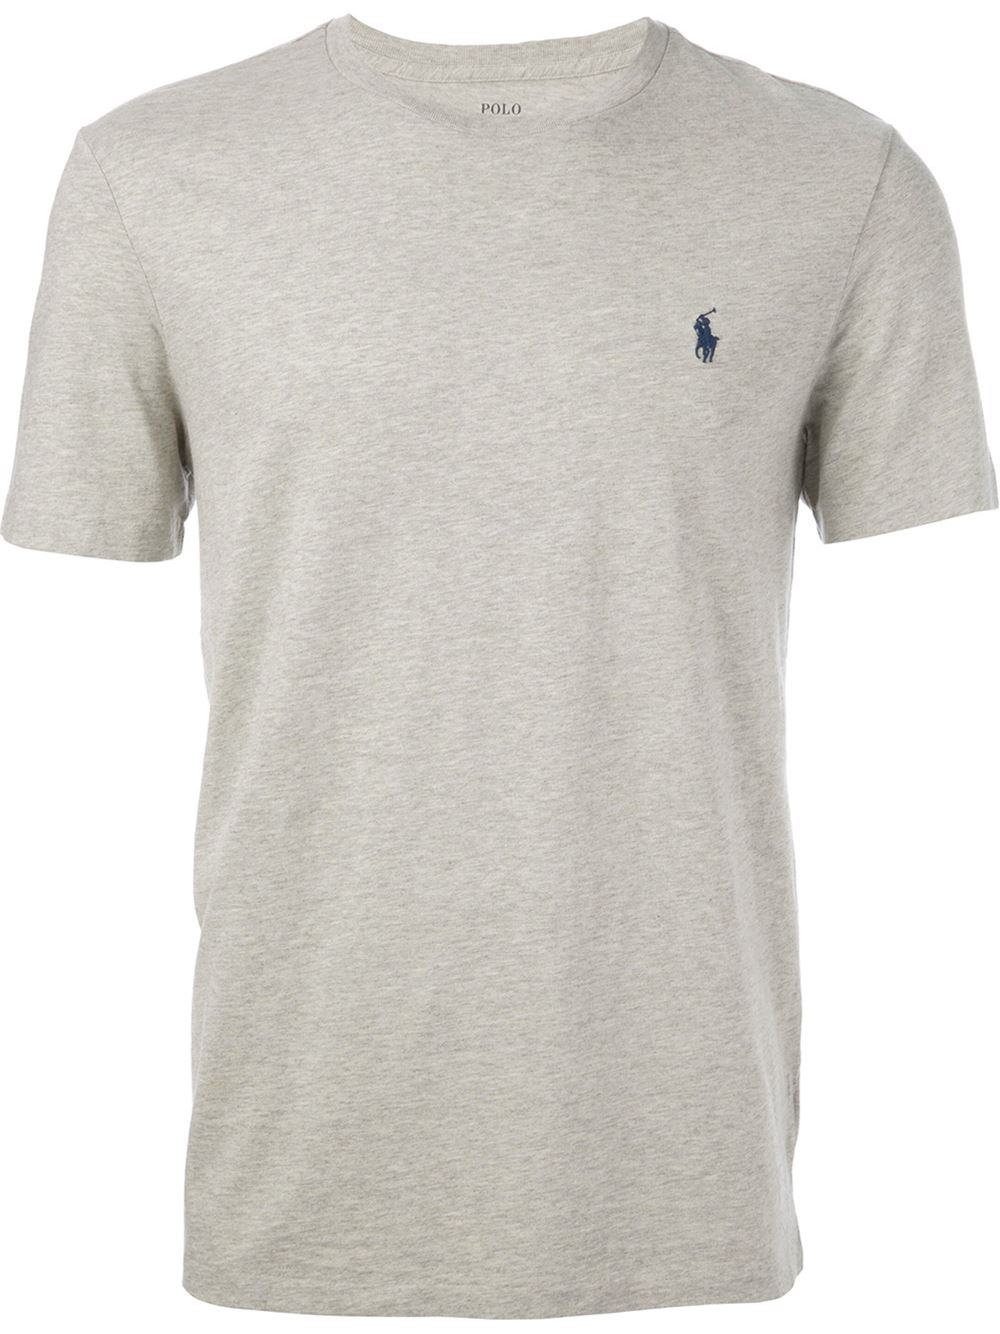 polo ralph lauren logo t shirt in gray for men grey lyst. Black Bedroom Furniture Sets. Home Design Ideas